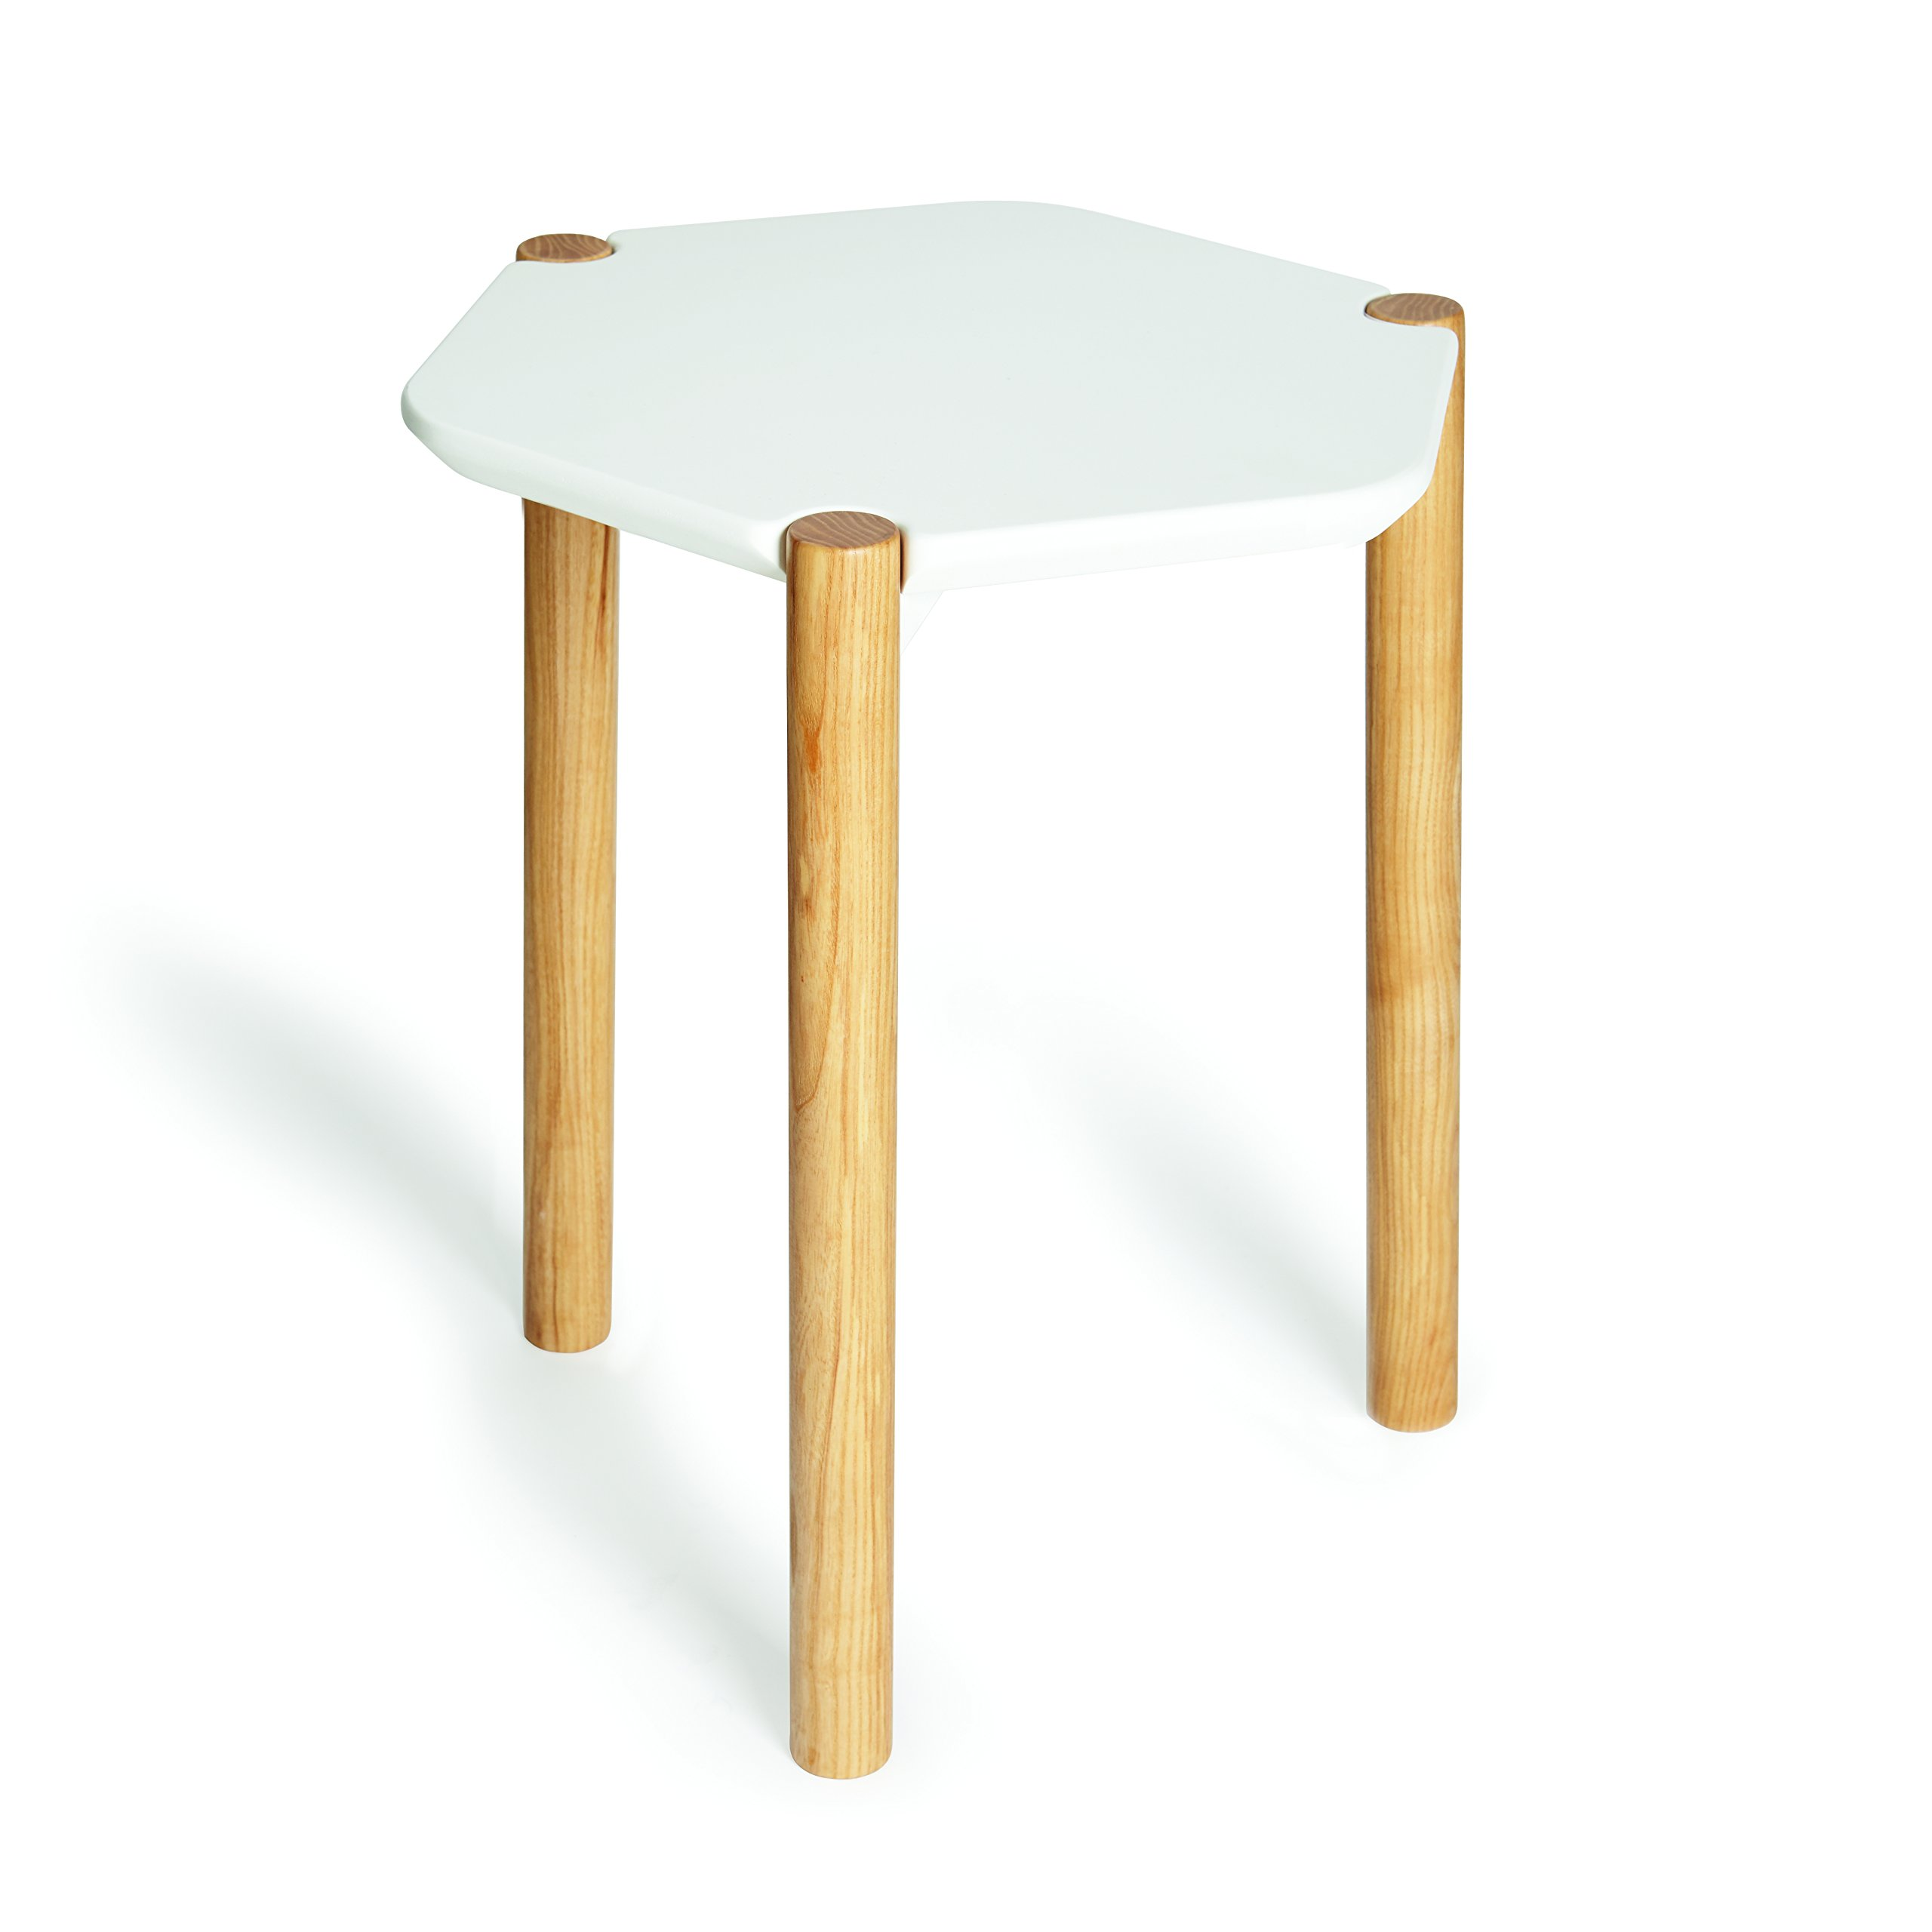 Umbra Lexy Side Table, Wood Side Table, Geometric Tabletop, White/Natural Ashwood Finish